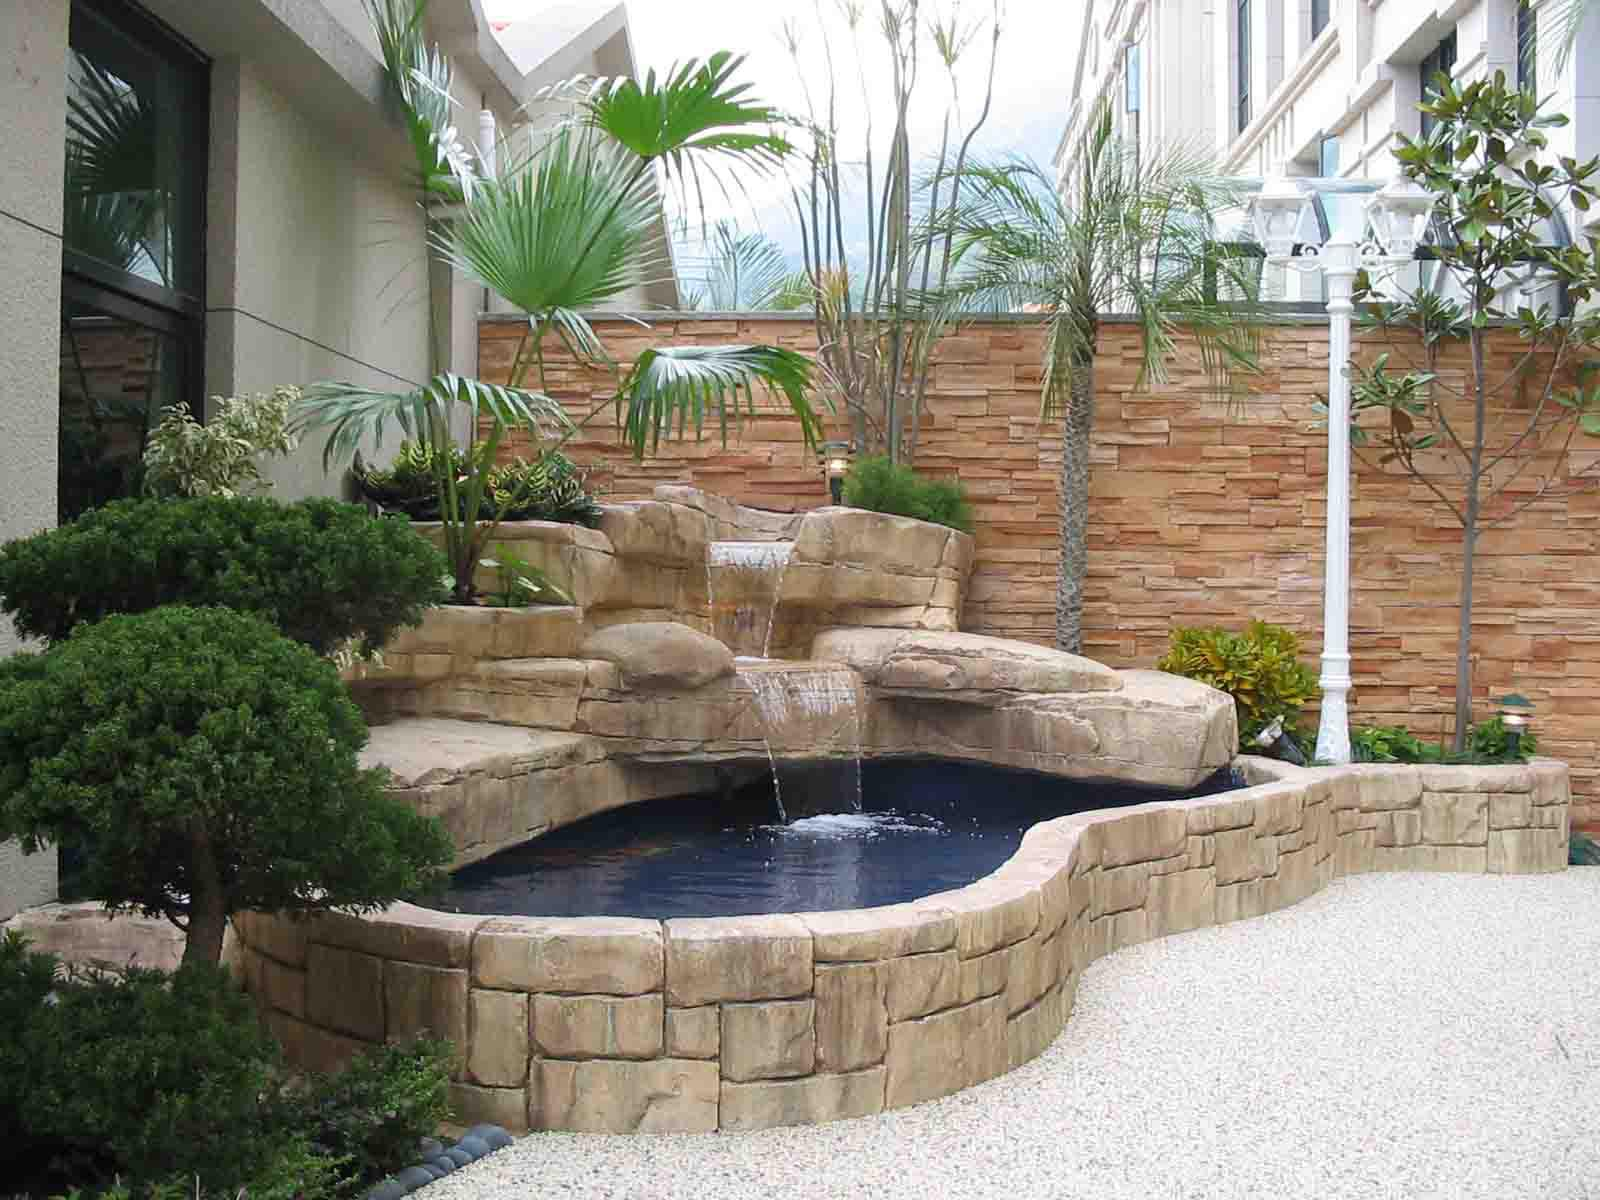 Fish pond garden design backyard design ideas for Koi pond design pictures